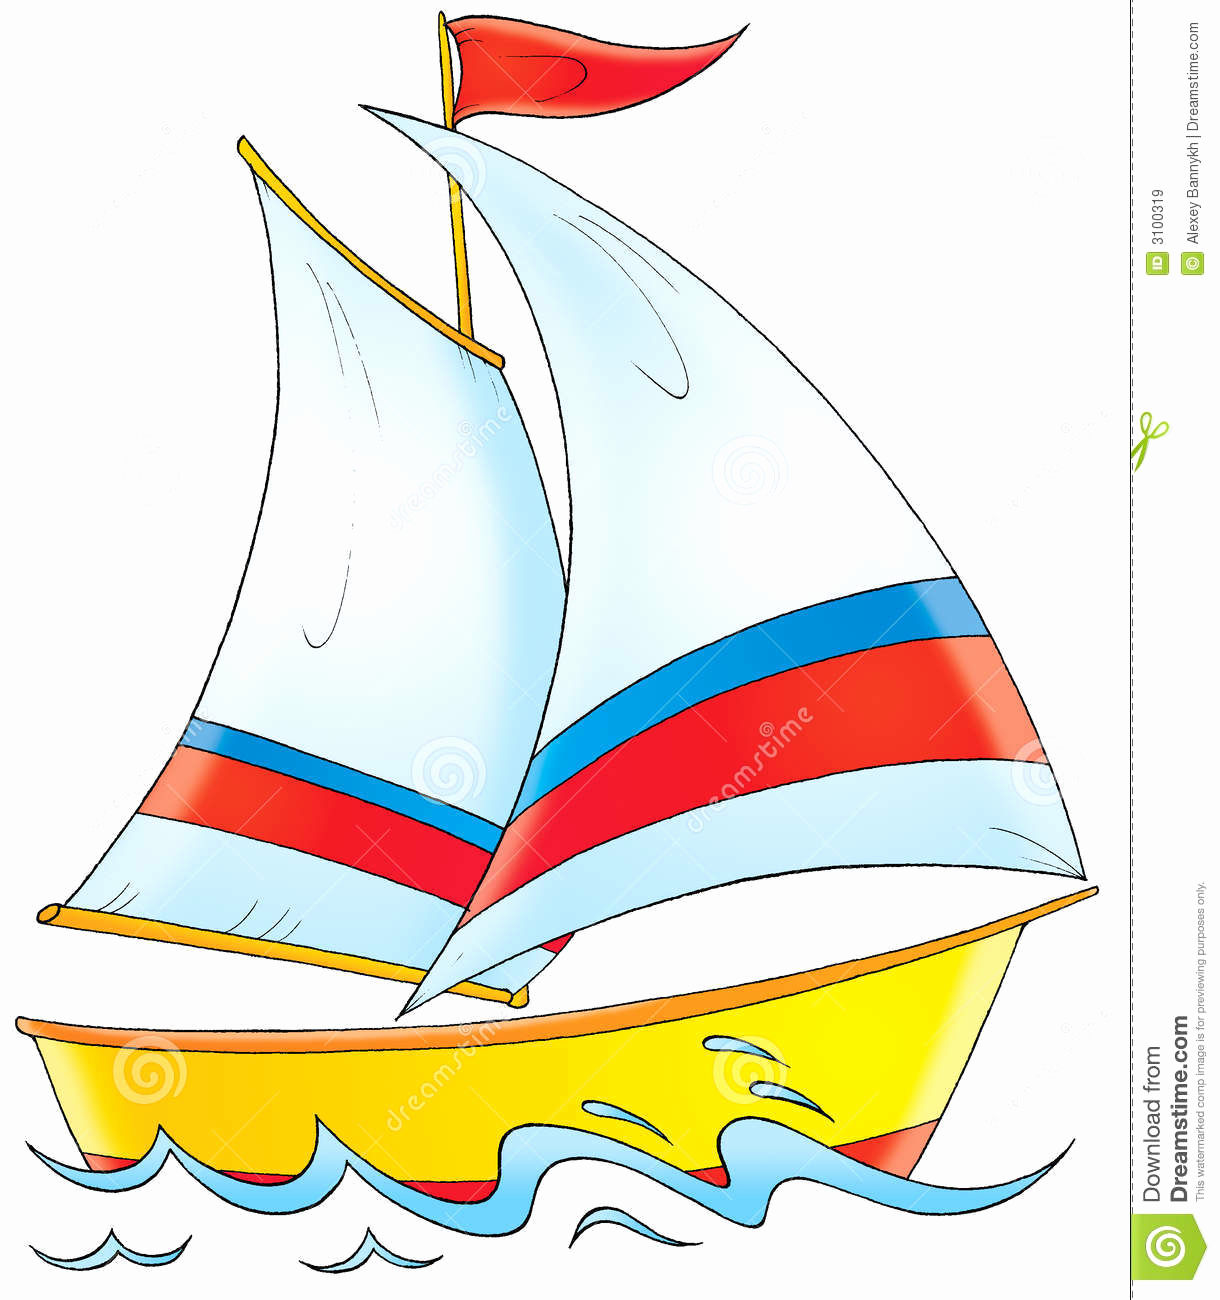 Cute yacht children illustration. Sail clipart yatch picture freeuse